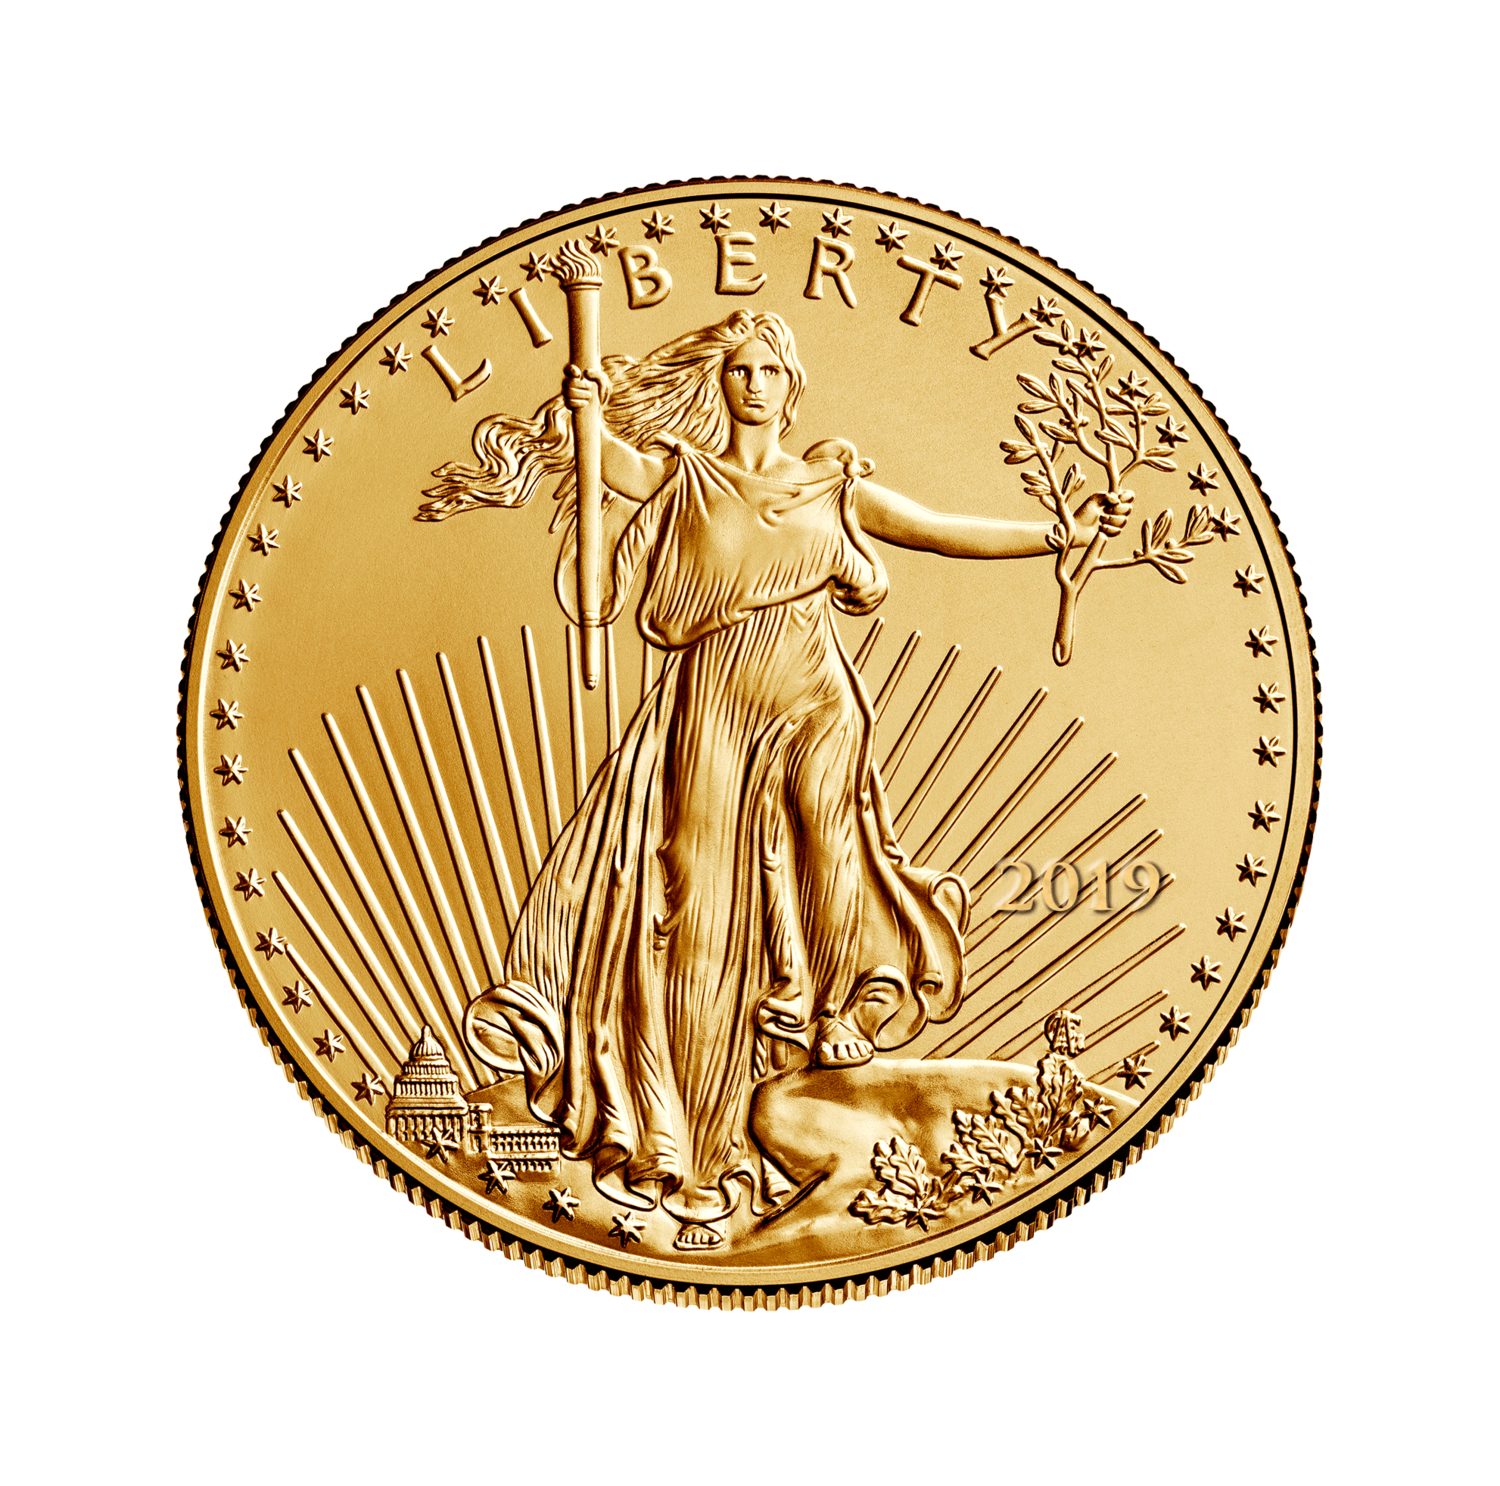 Mint condition png. American eagle gold